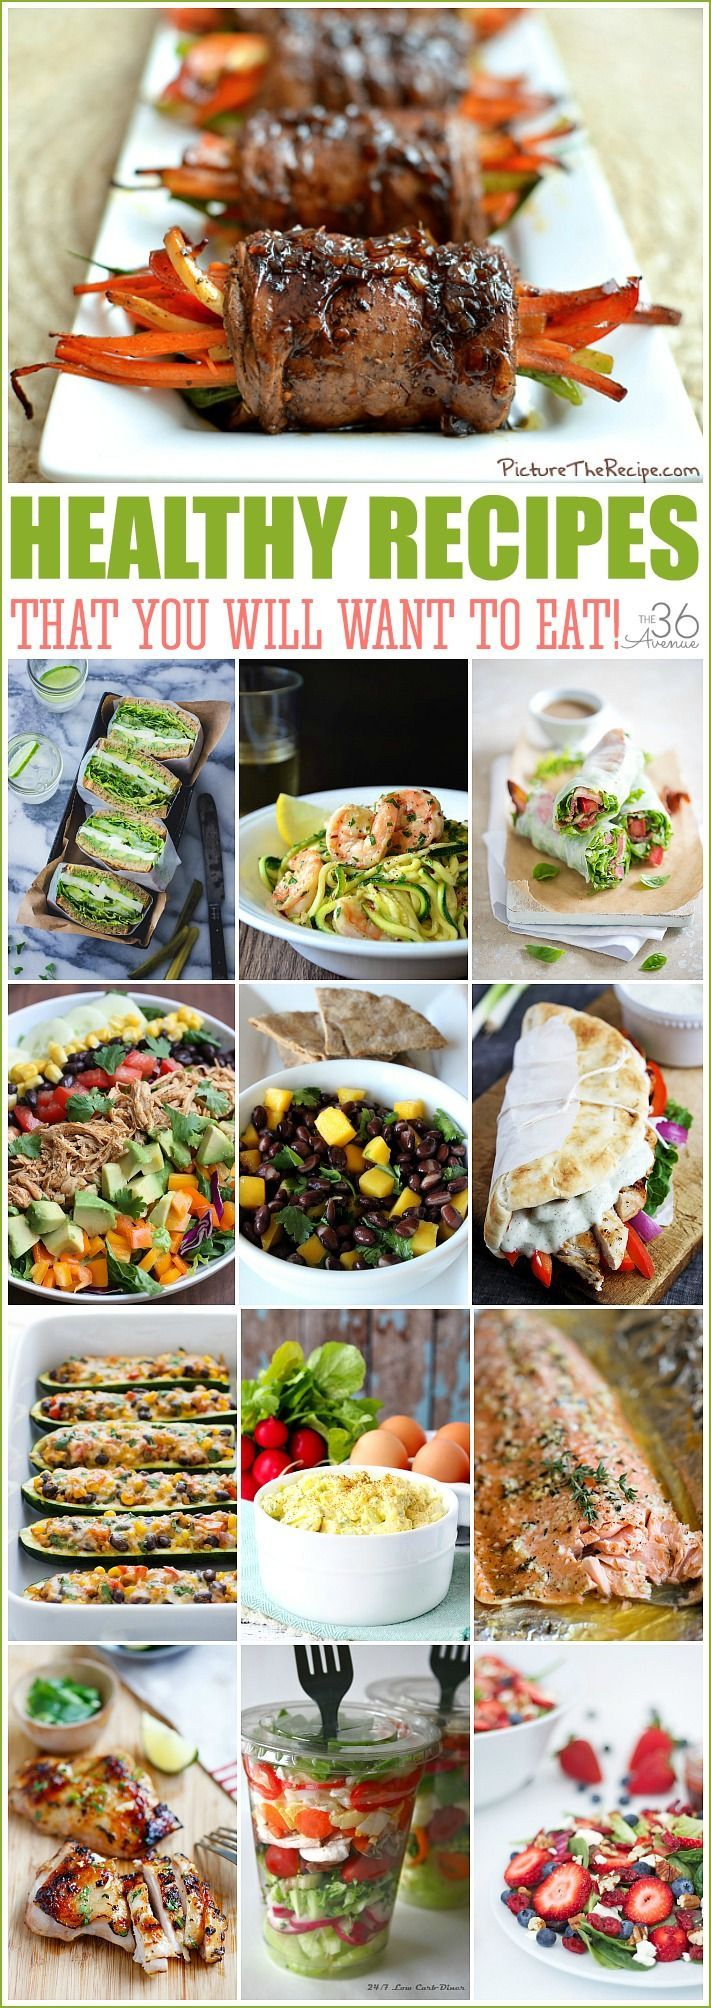 30 Healthy Recipes THAT YOU WILL WANT TO EAT!  If you are looking for low fat, low carbs, or easy and quick healthy recipes this post is for you!